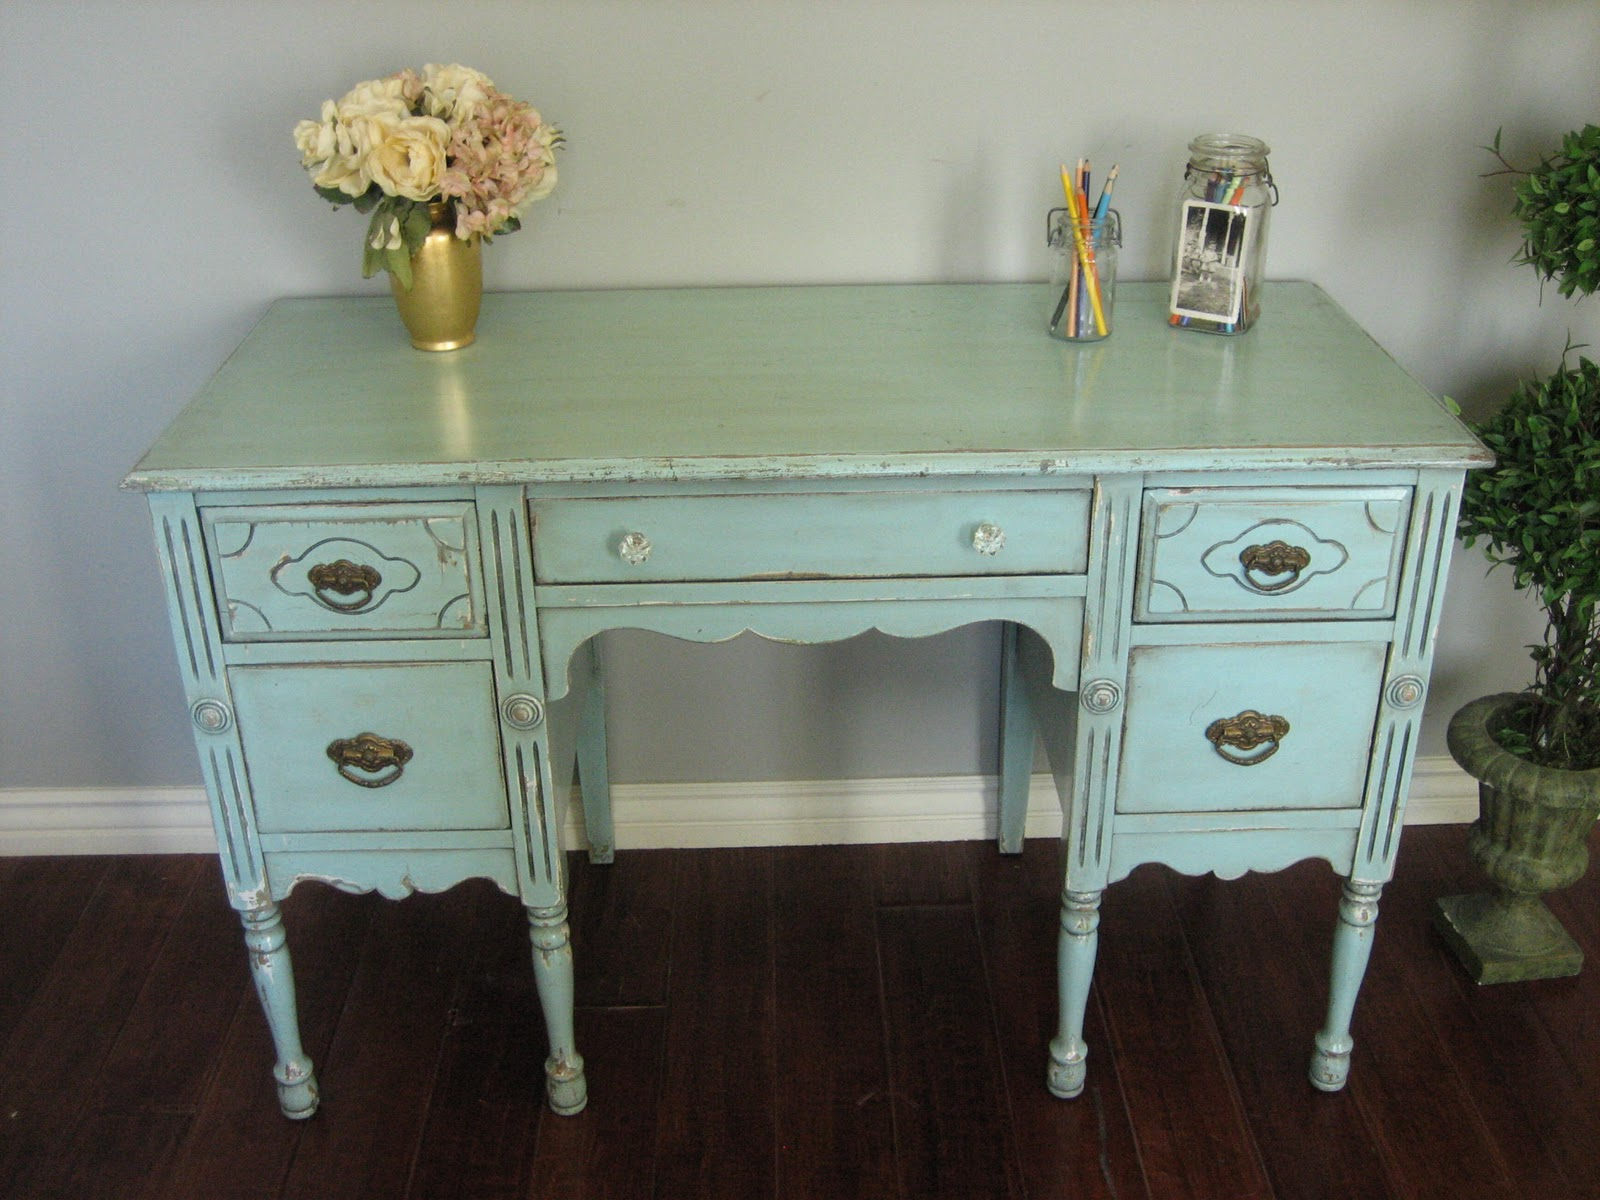 Shabby chic furniture finishing apartments i like blog for Shabby chic furniture